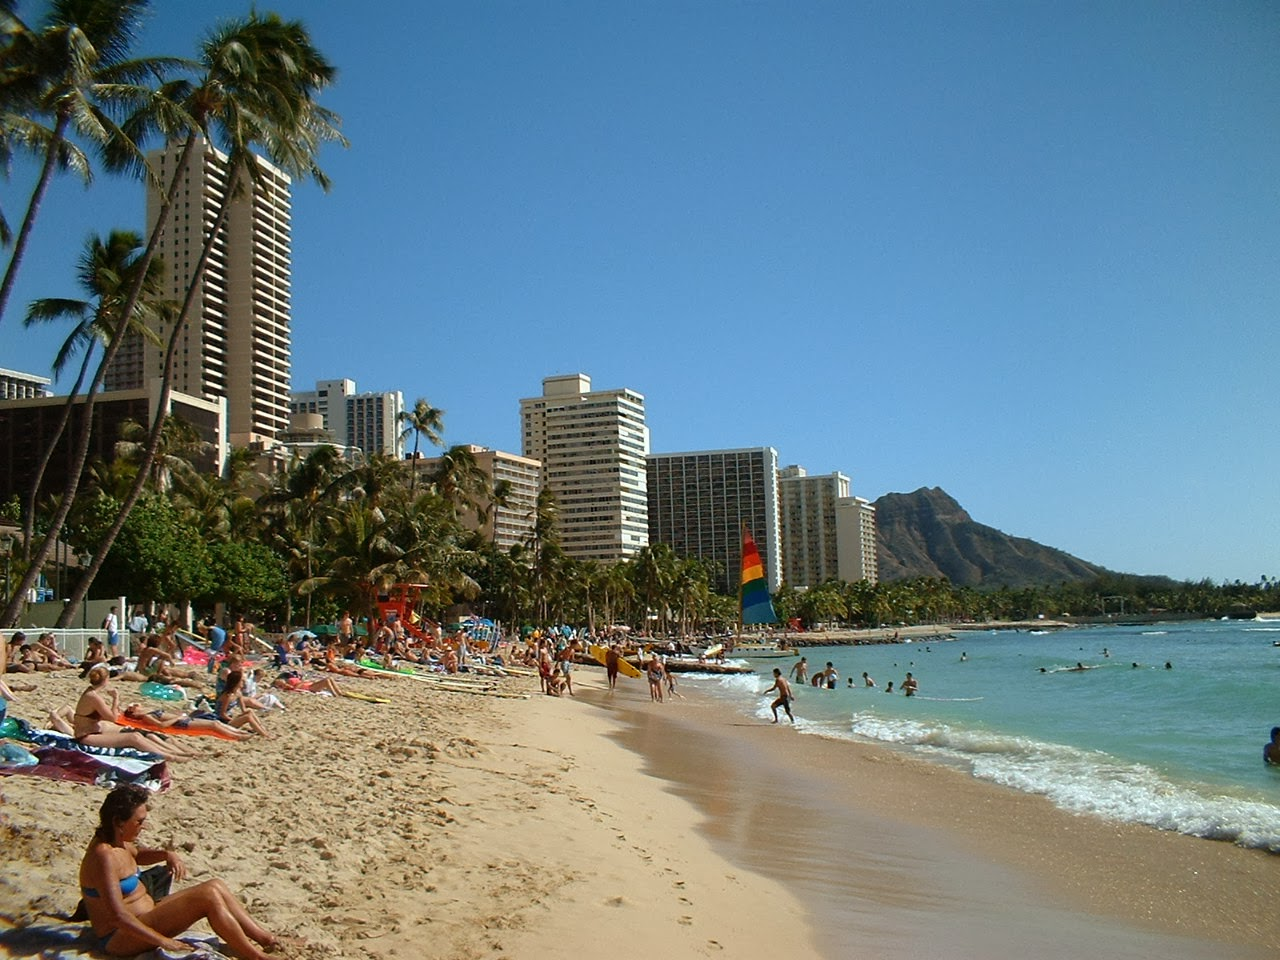 Waikiki, Hawaii, United States